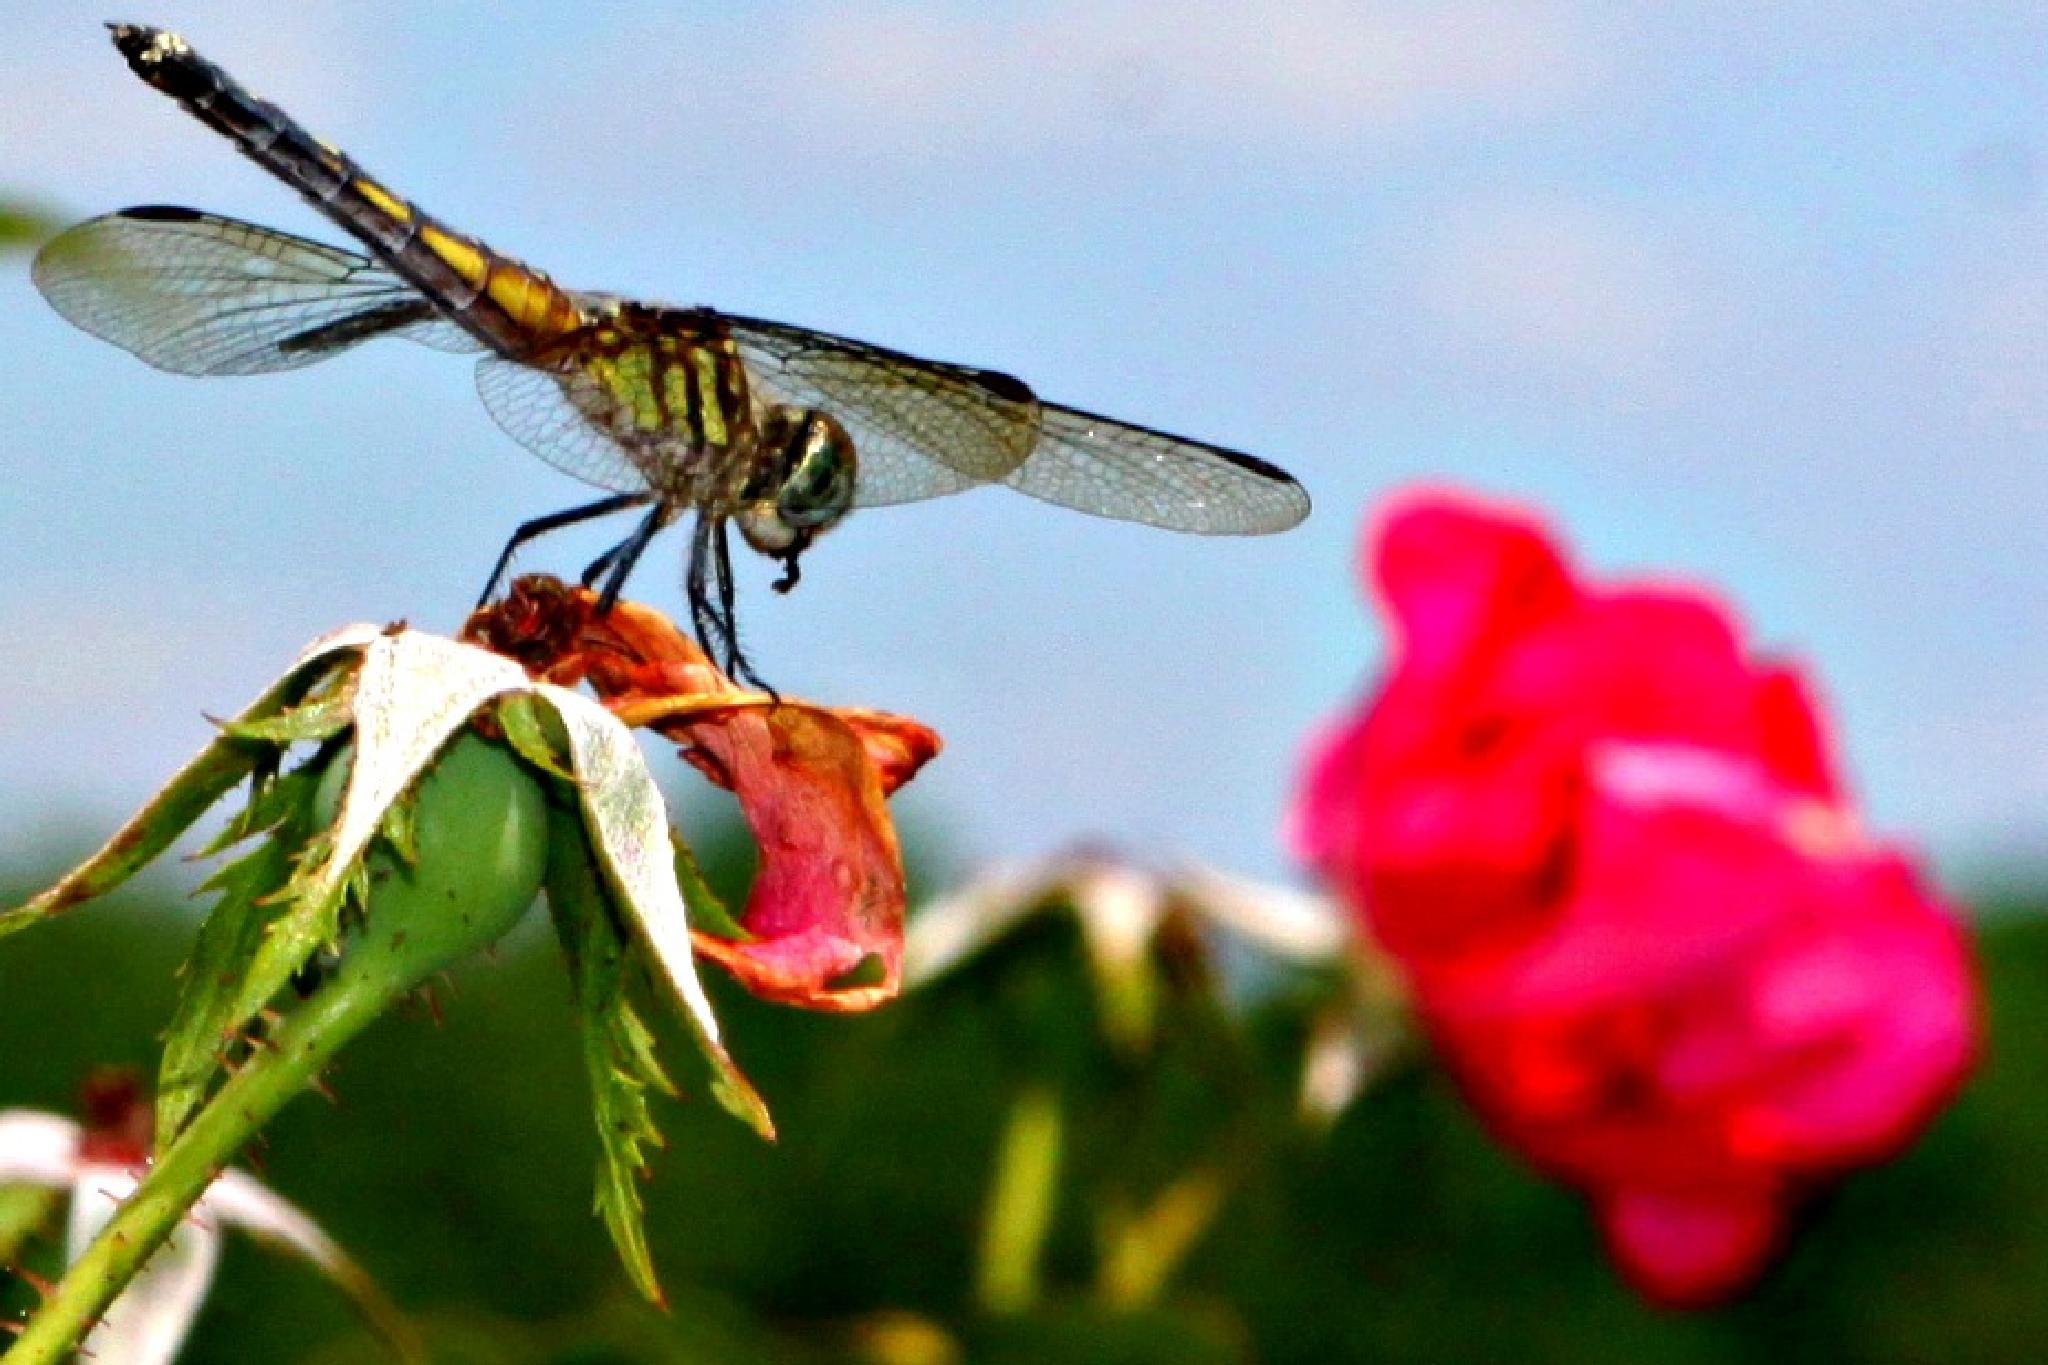 Dragonfly 1 by KimParrish